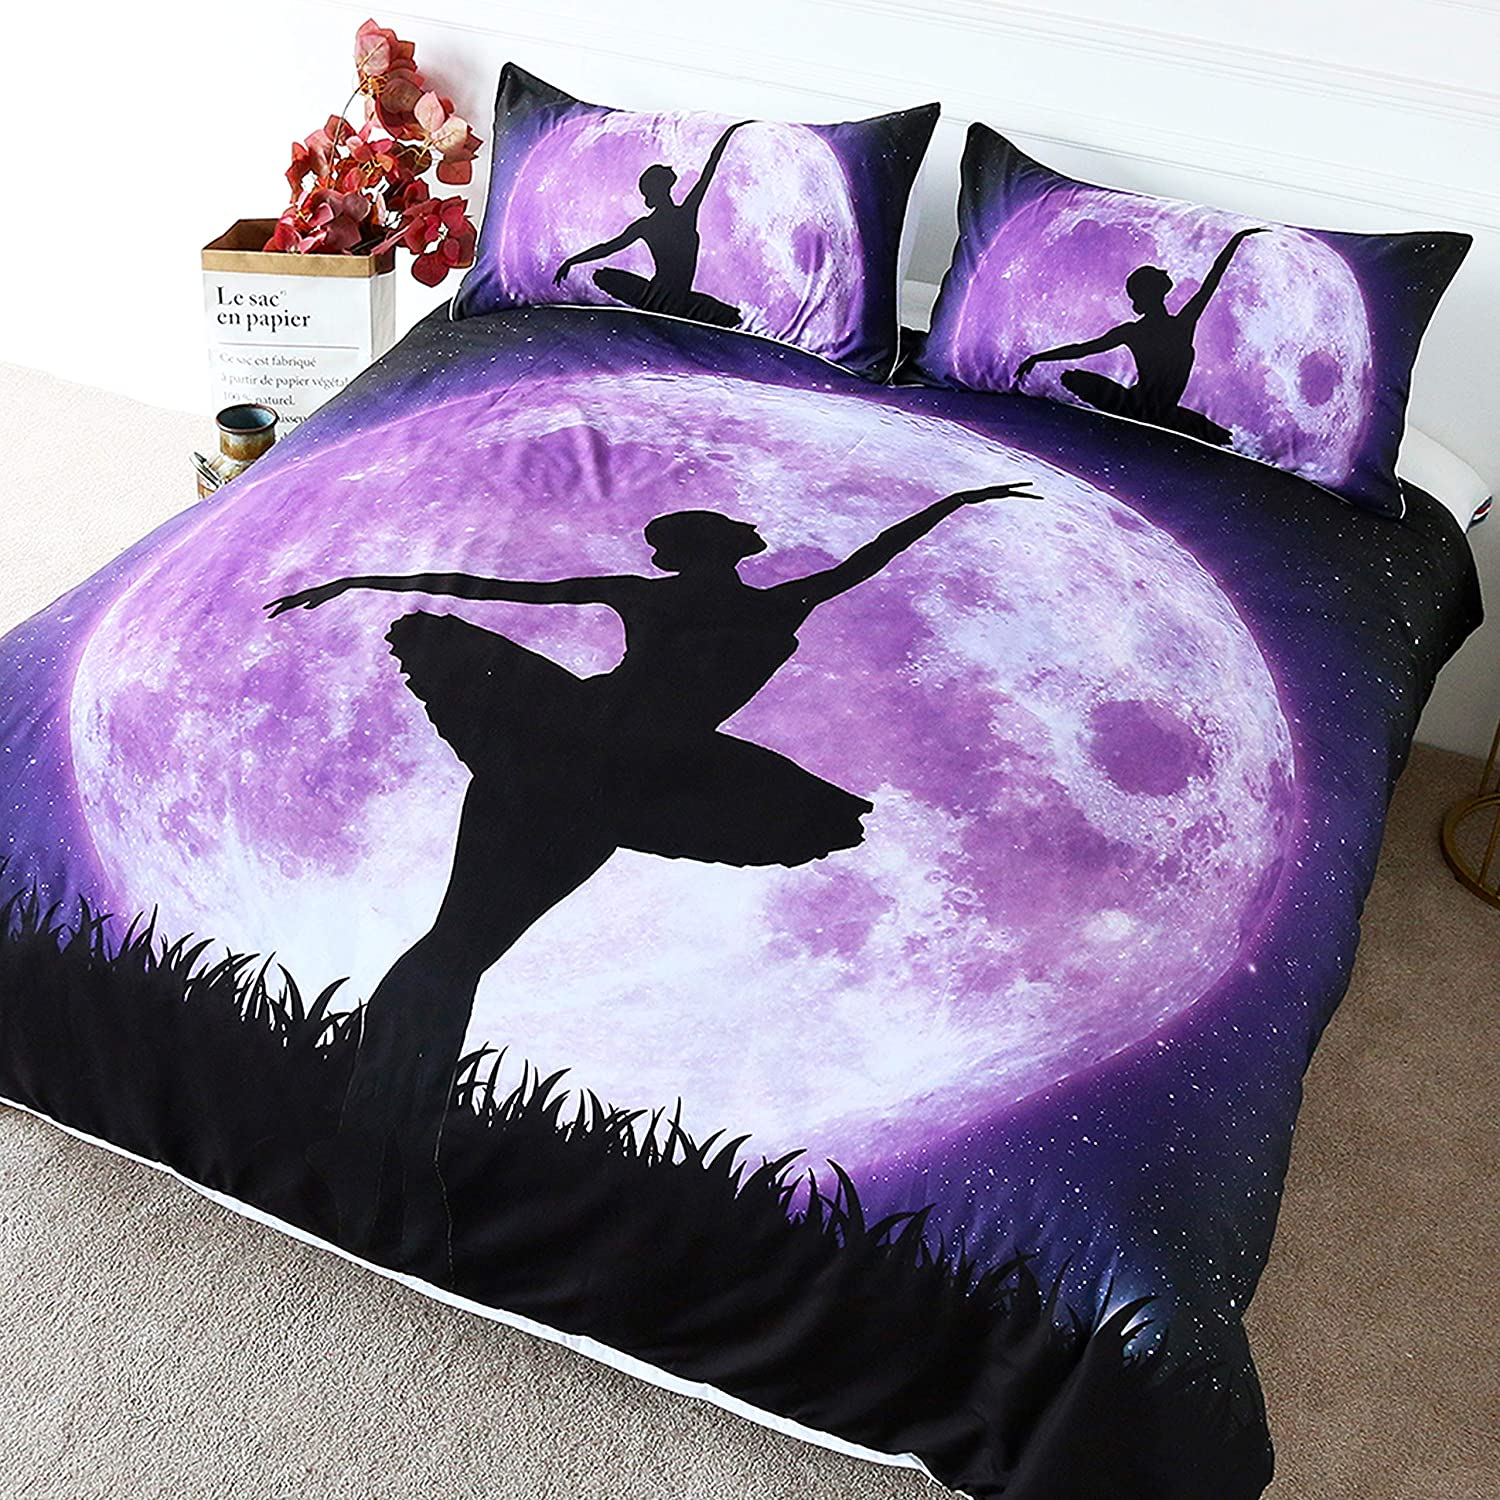 BlessLiving Home Fashion Ballerina Dance Bedding Nature Full Moon Duvet Cover Purple Galaxy Bedspread for Kids Girls (Twin)